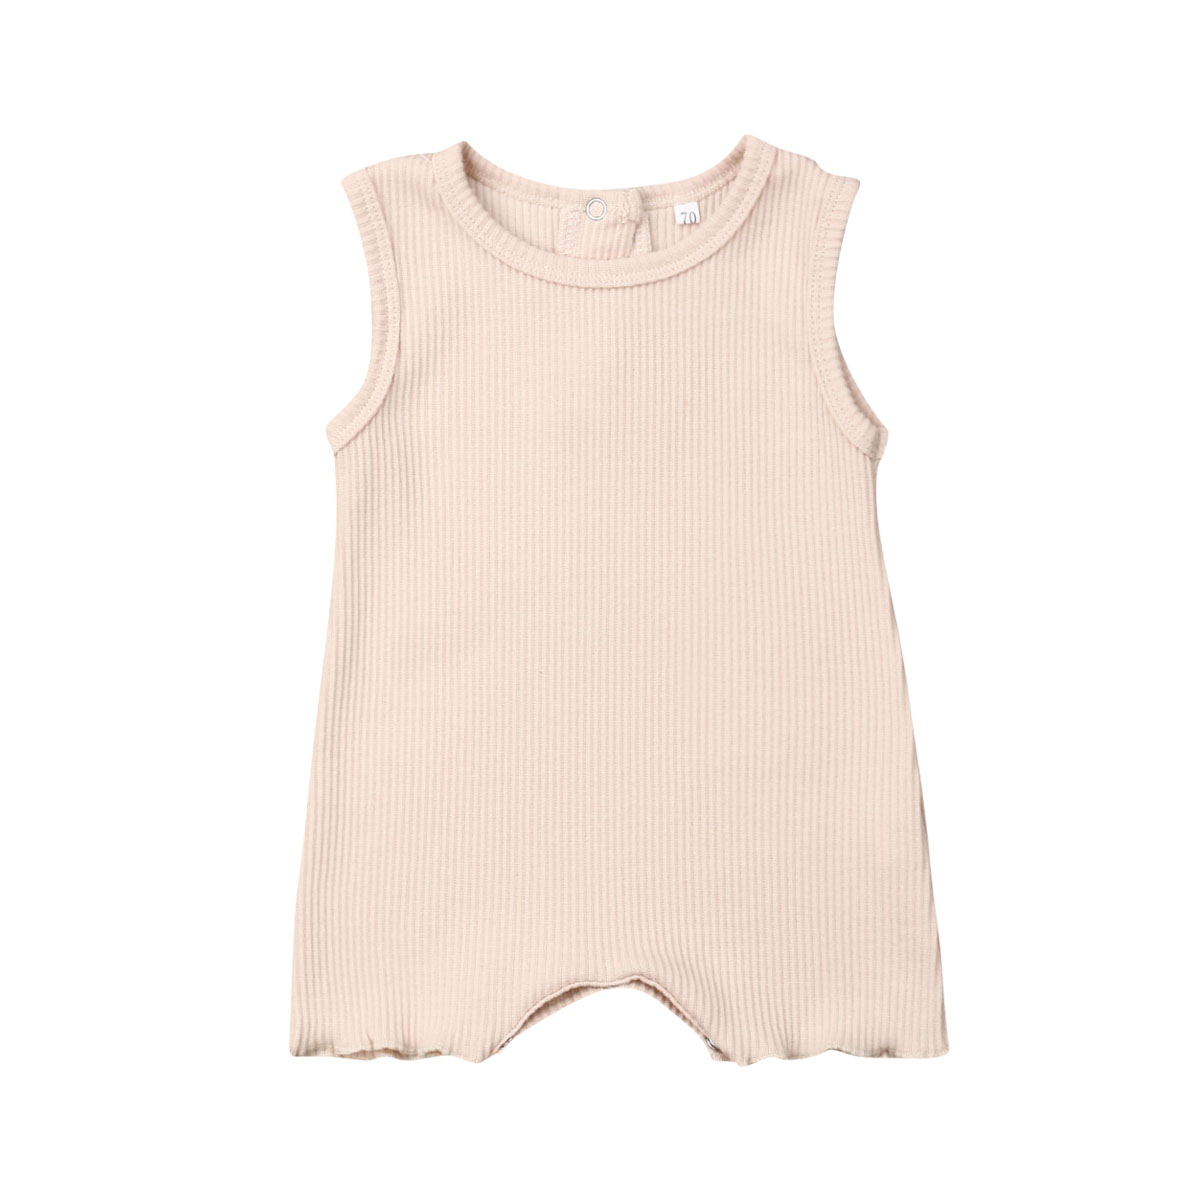 0 24M Unisex Toddler Baby Summer Romper Sleeveless Solid Color Knitting Back Button Cotton Playsuit Casual Cute Baby Clothing in Rompers from Mother Kids